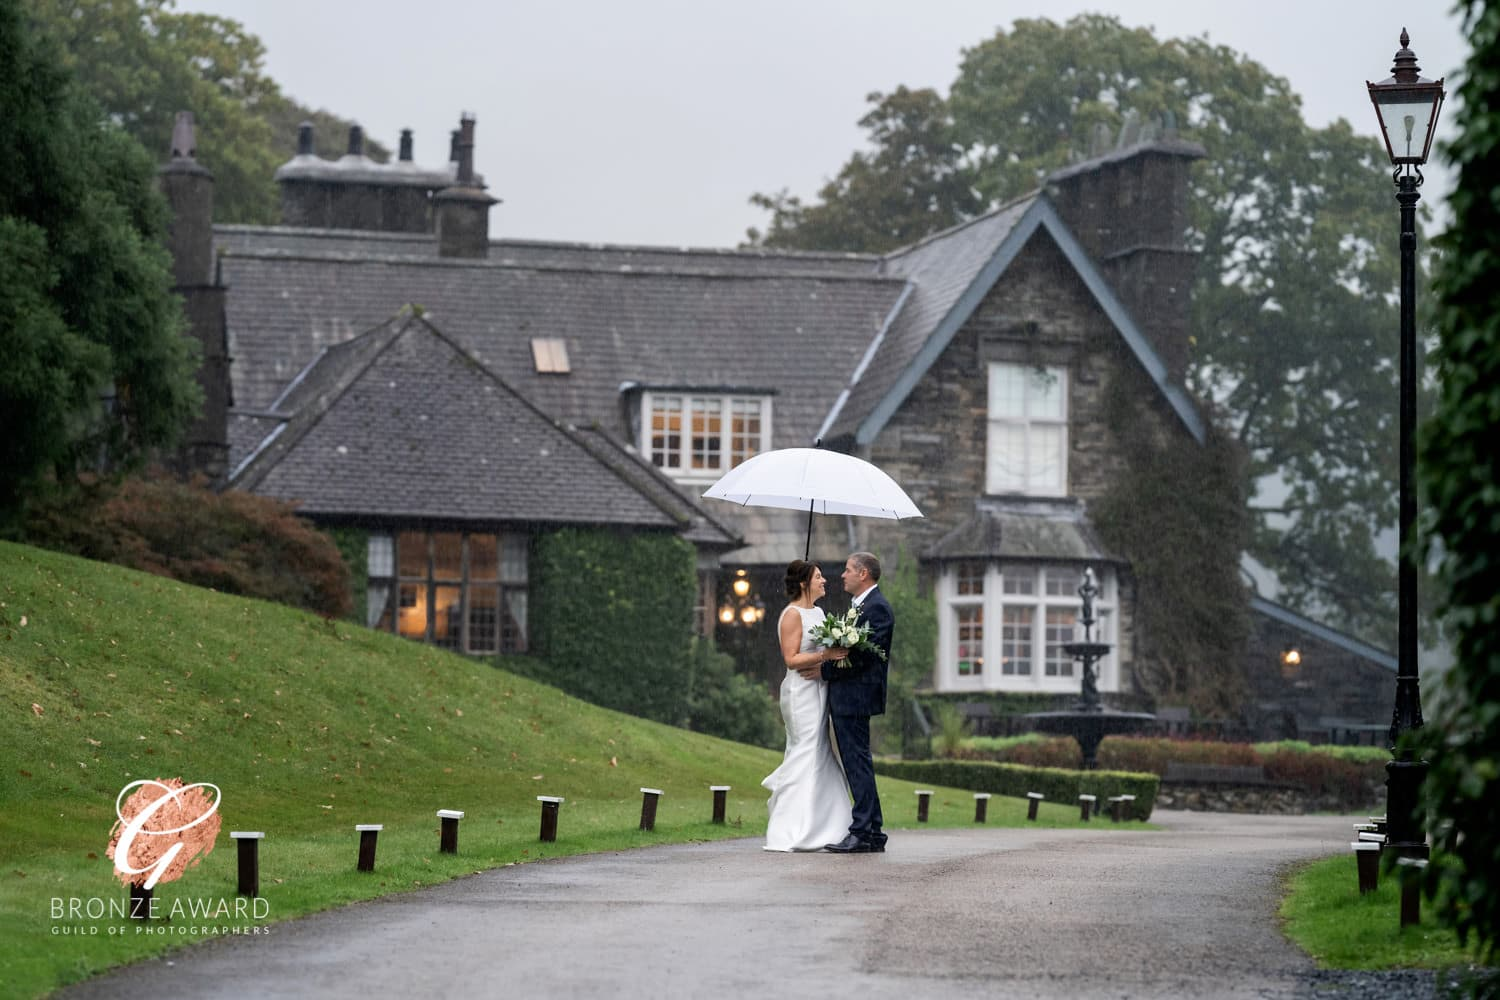 a bride and groom under an umbrella in the rain at broadoaks country house hotel